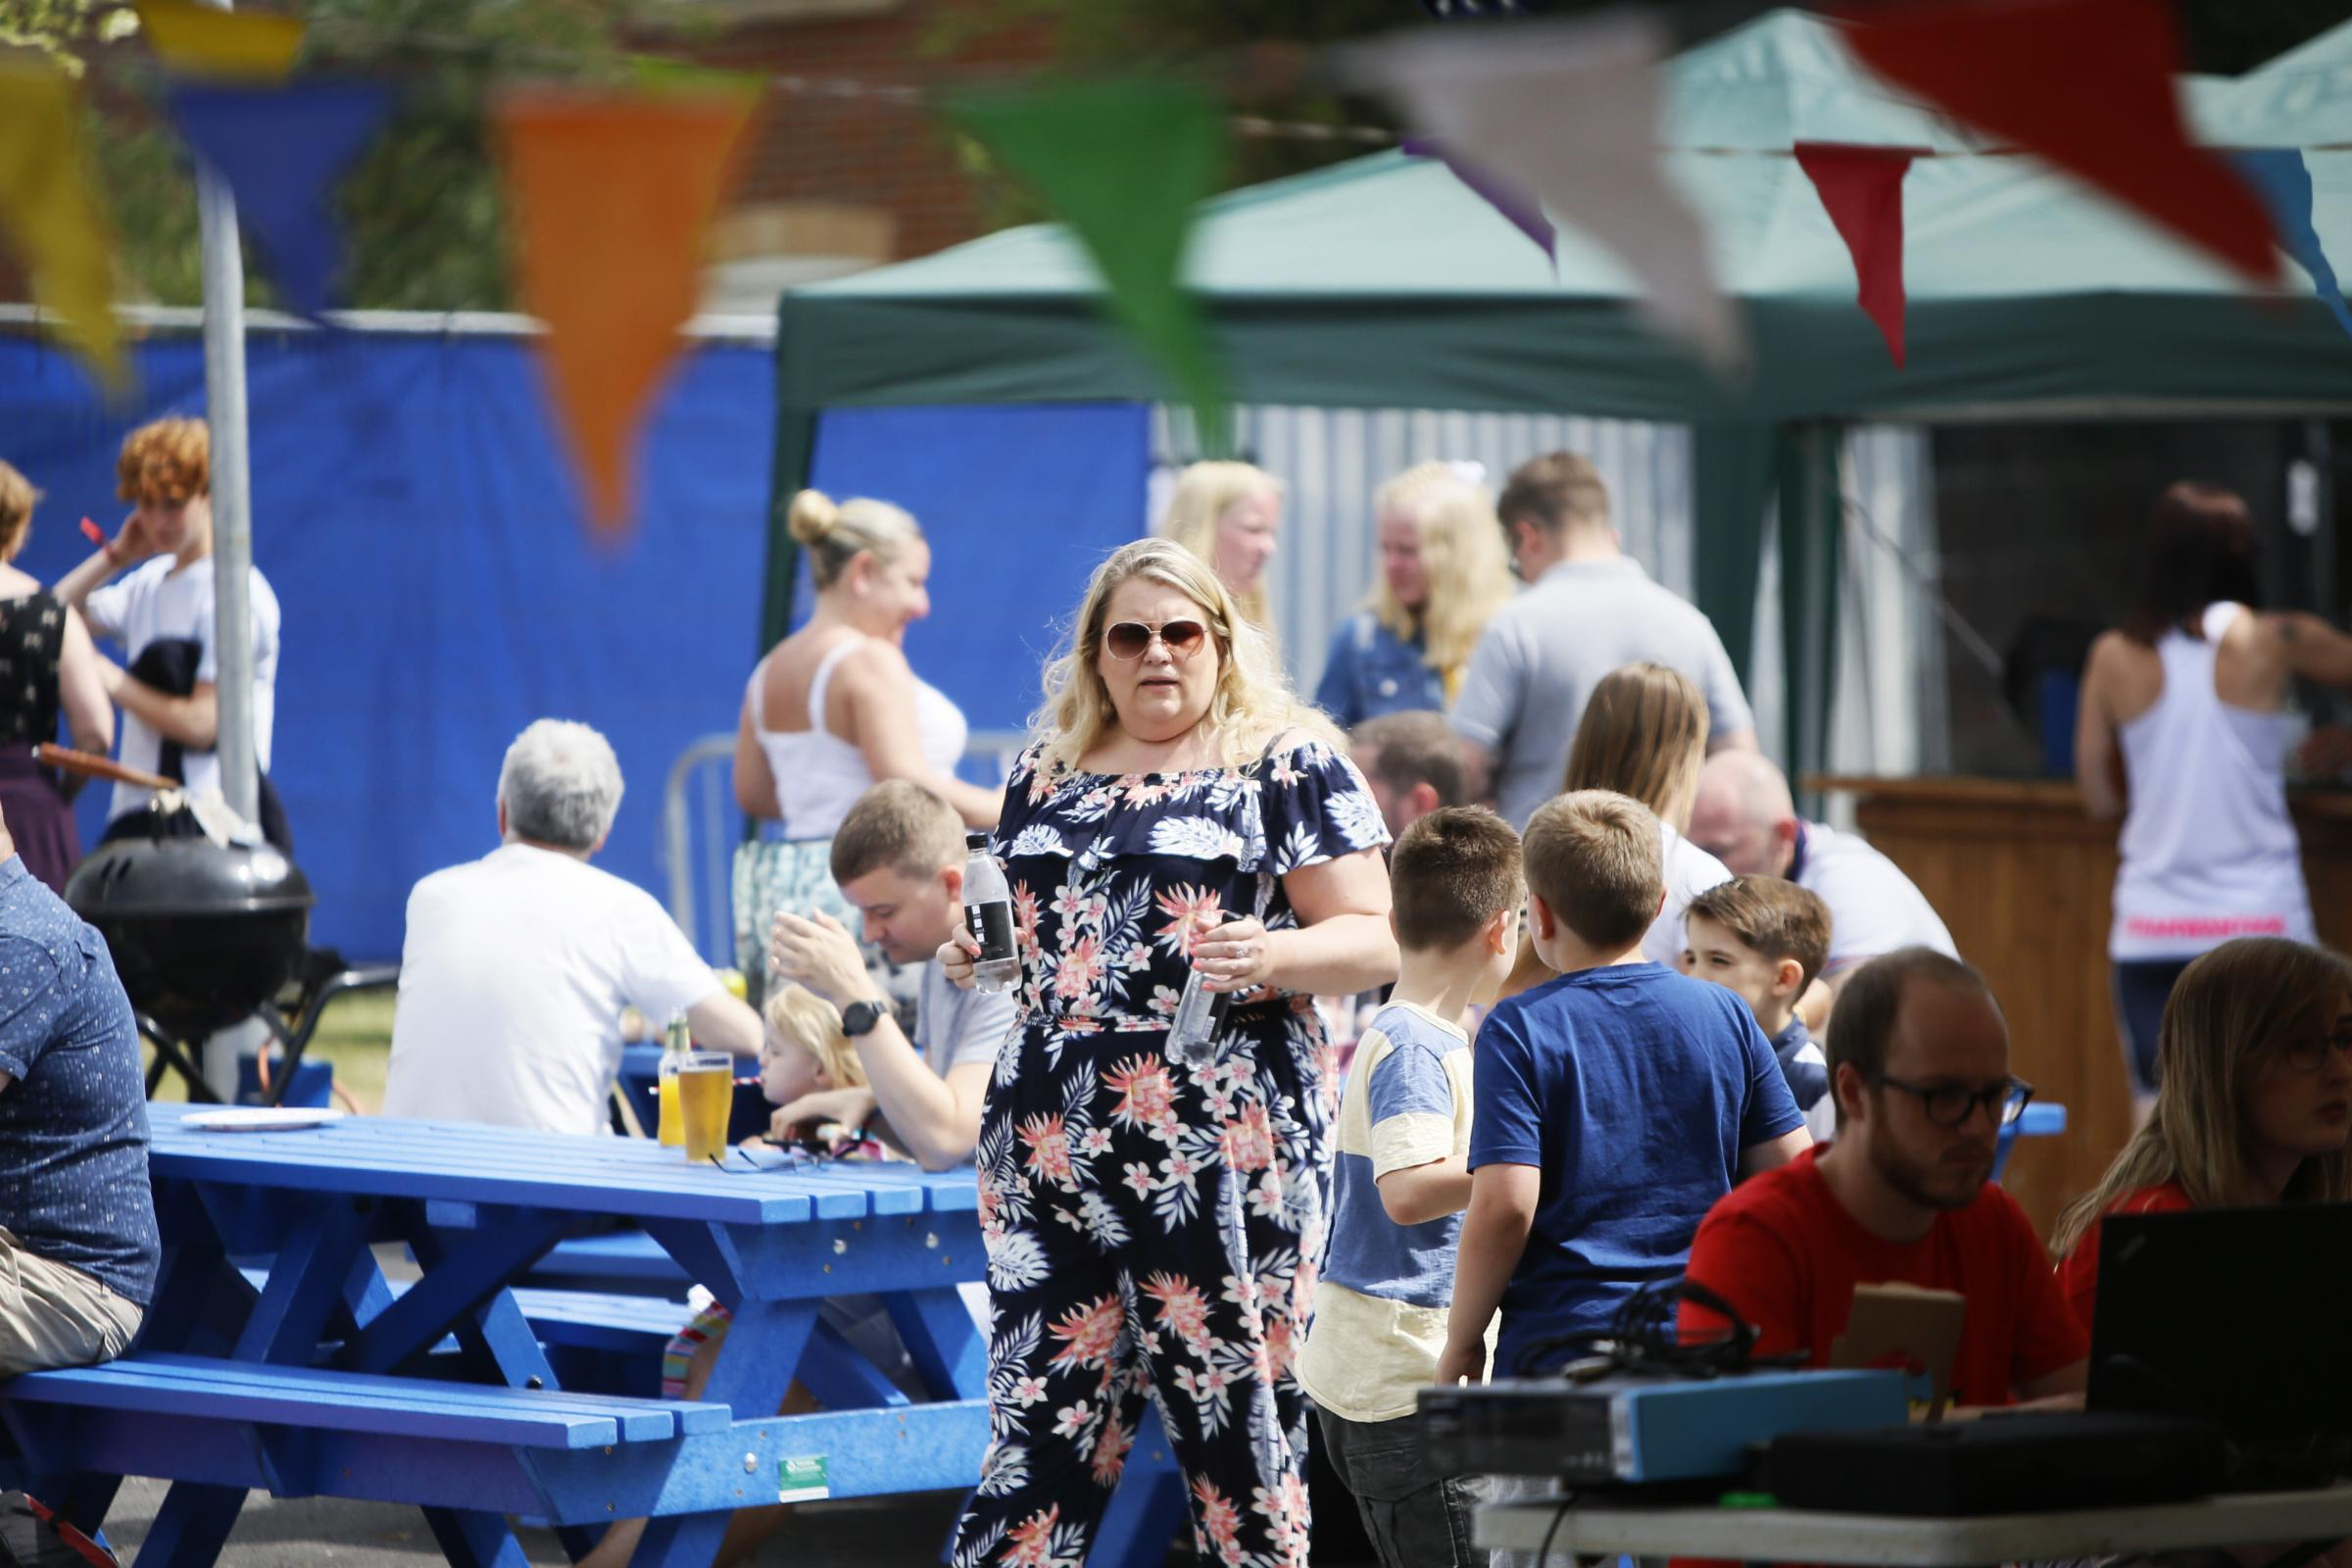 Sweatbox's What The Fest 2019 was 'amazing'